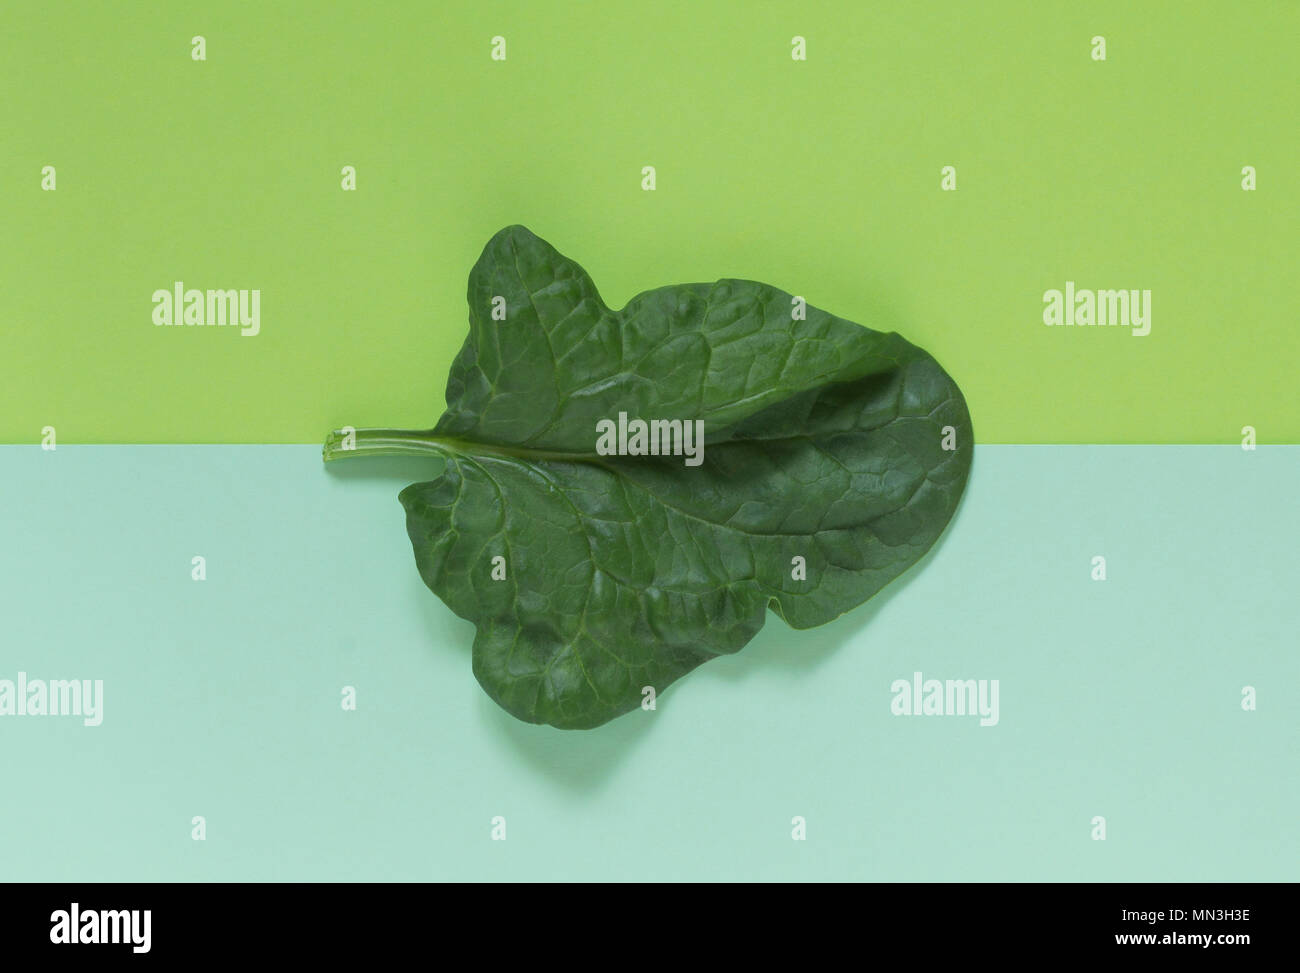 Fresh green leaf of spinach on a background of similar (analogous colors) shades of green. Two tone color paper. Abstract photo. Template.Top view. - Stock Image